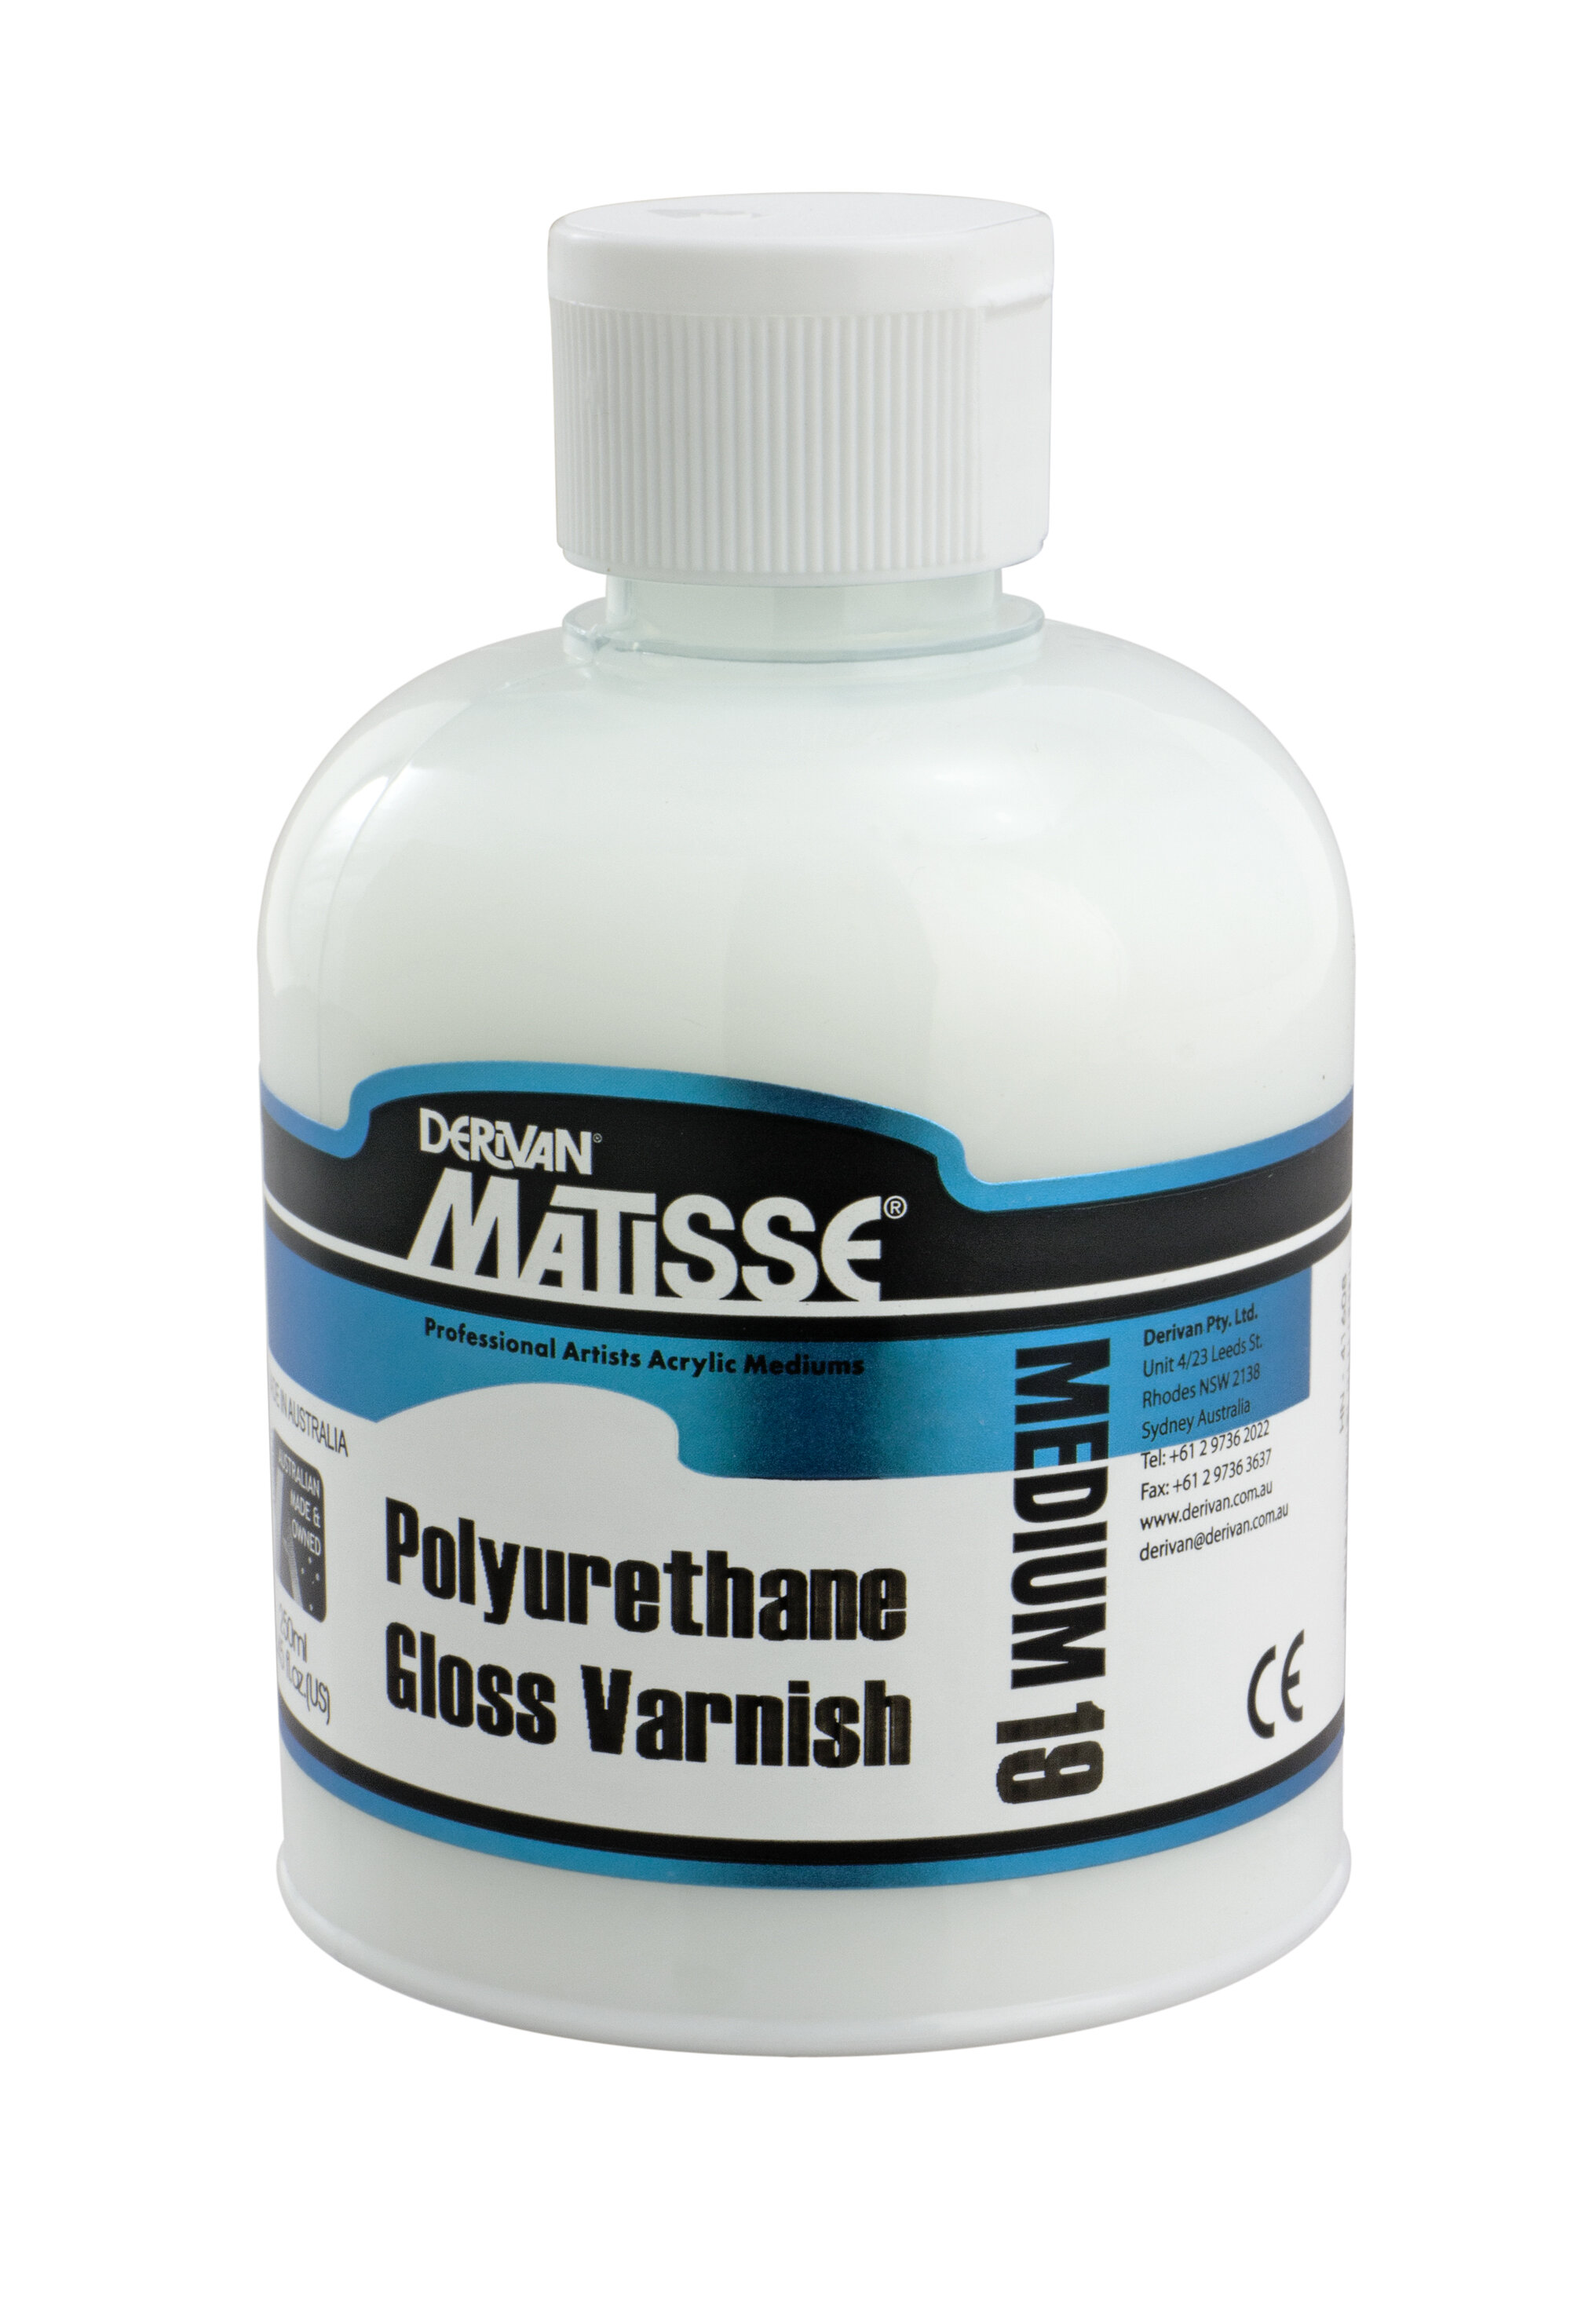 MM19 Polyurethane Gloss Varnish - ———————Water-based polyurethane varnish with a non-yellowing hard wearing high gloss finish (for use on rigid surfaces only)